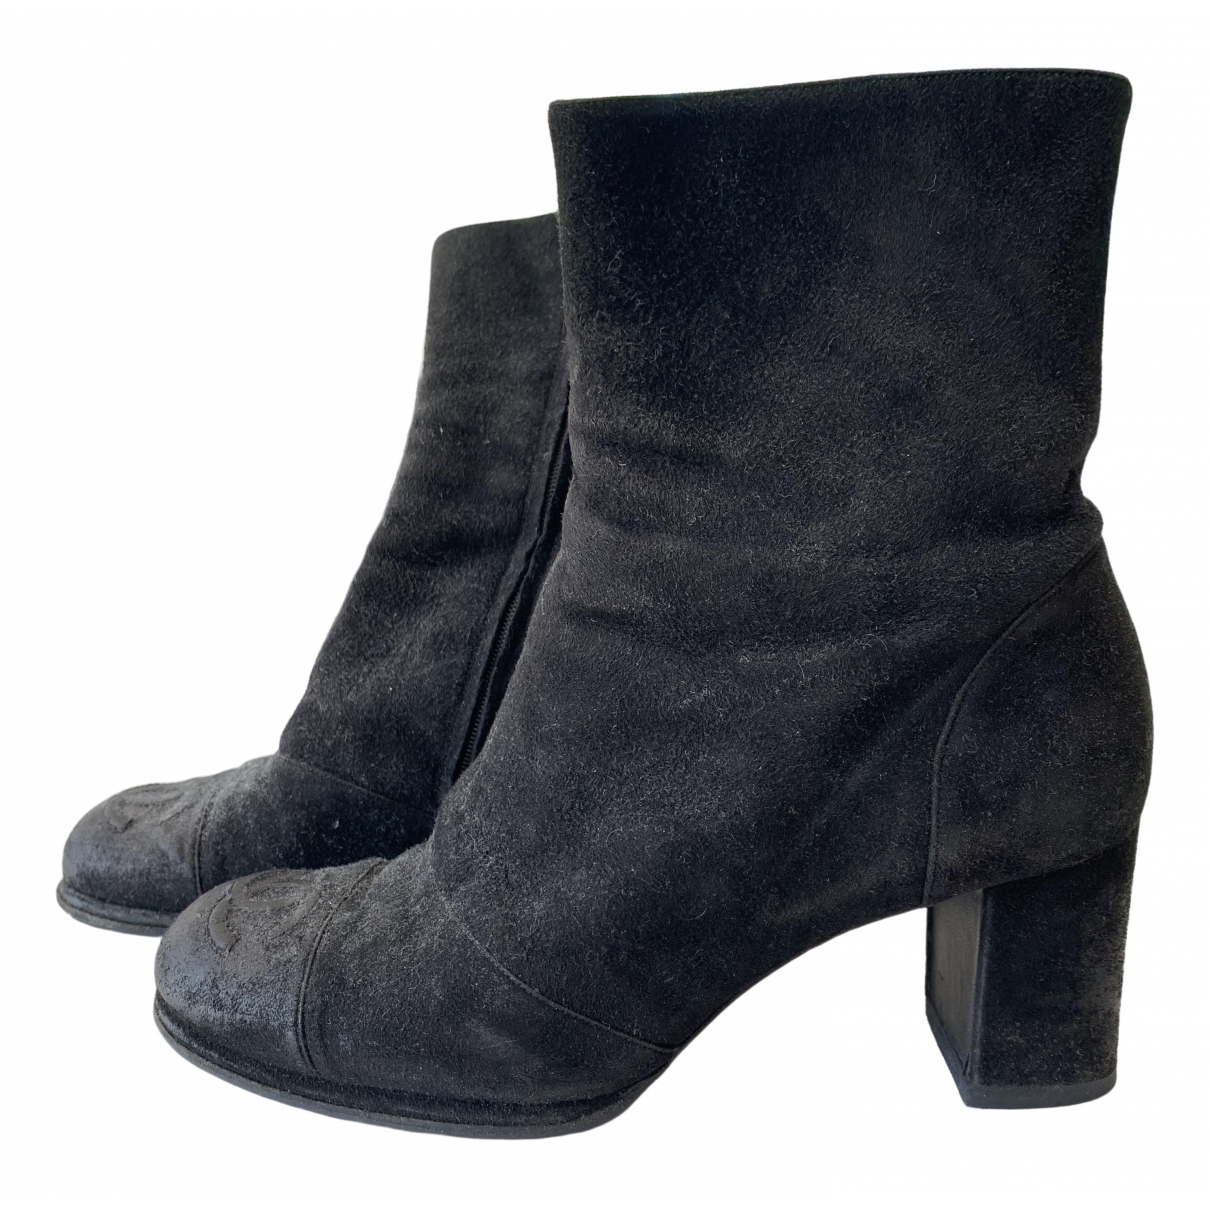 Chanel \N Black Suede Boots for Women 37 EU